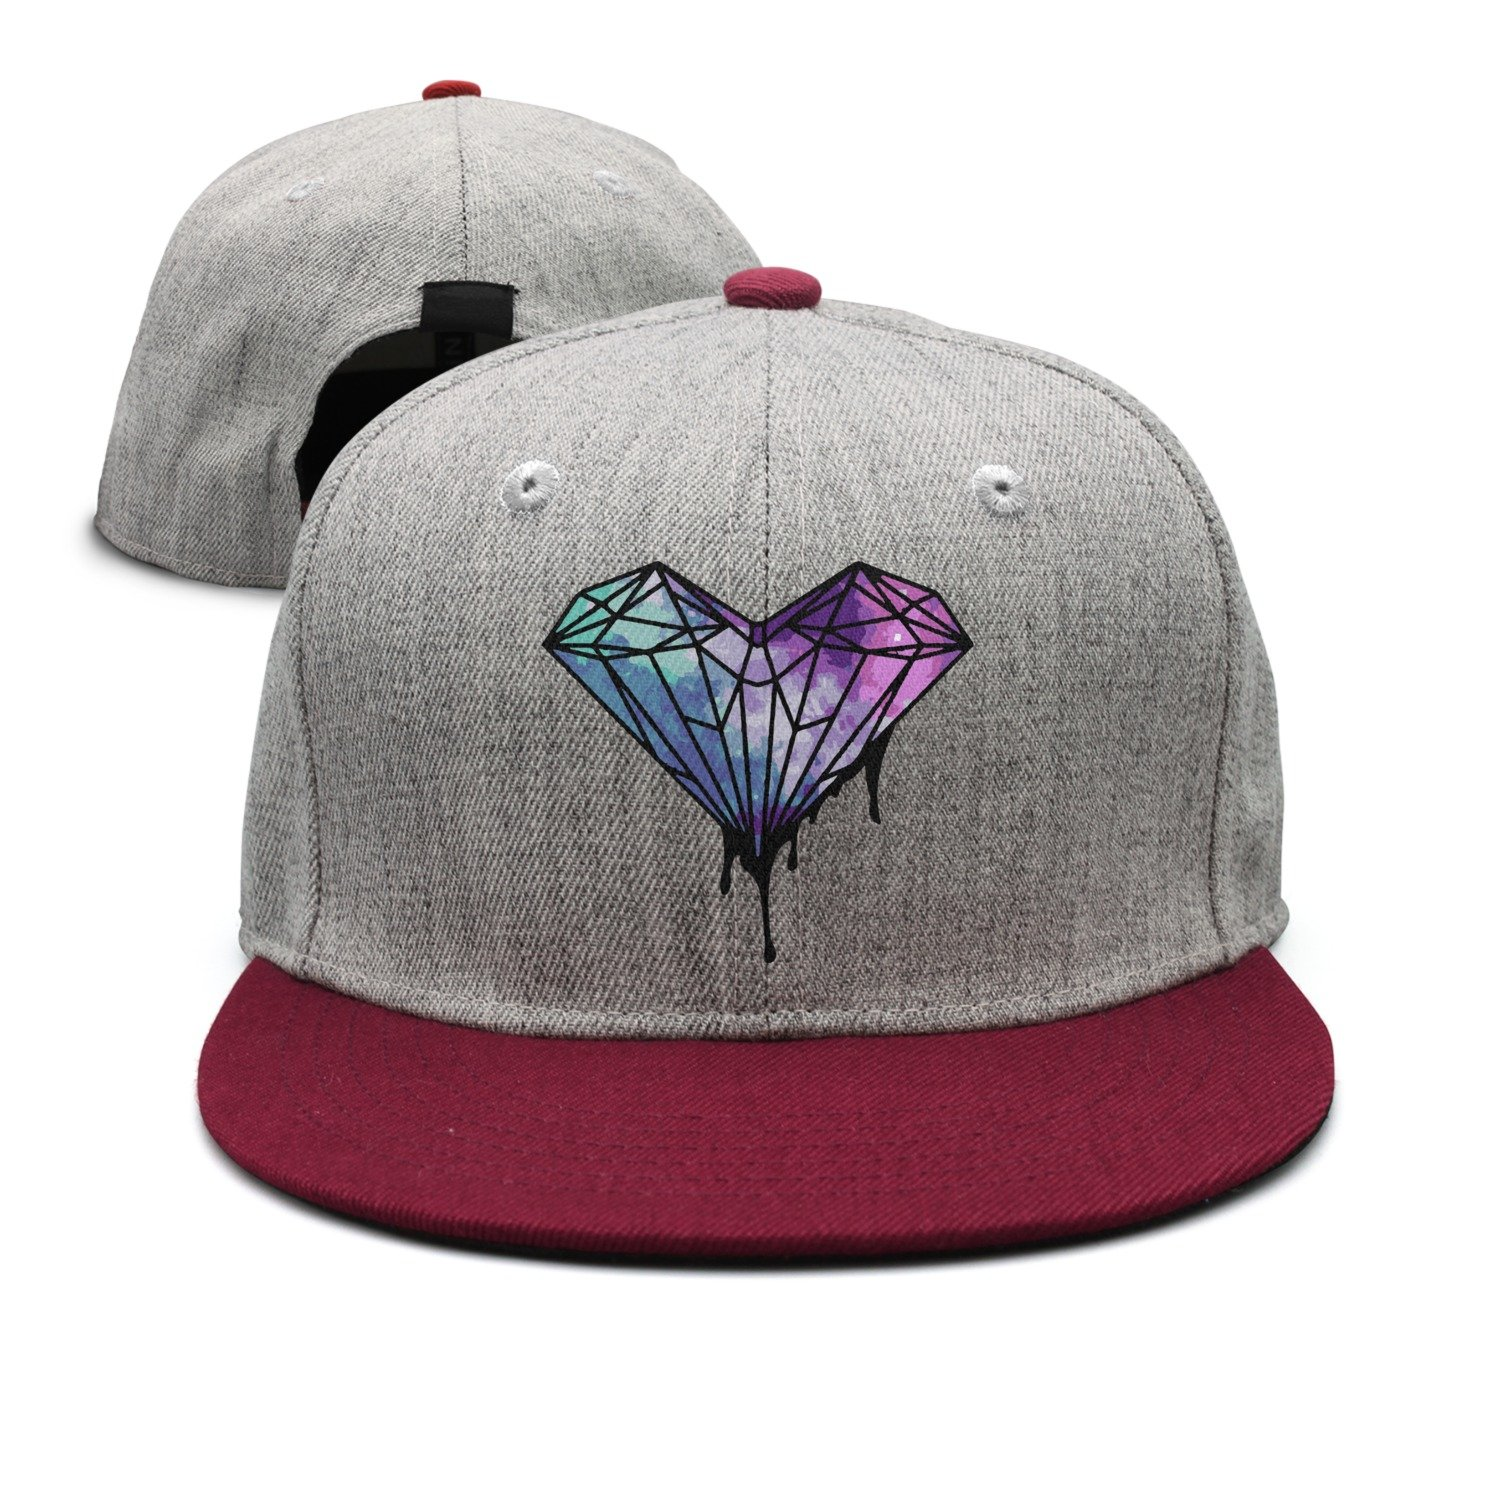 Galaxy Diamond Baseball Caps Snapback Trucker Hats Snapbacks